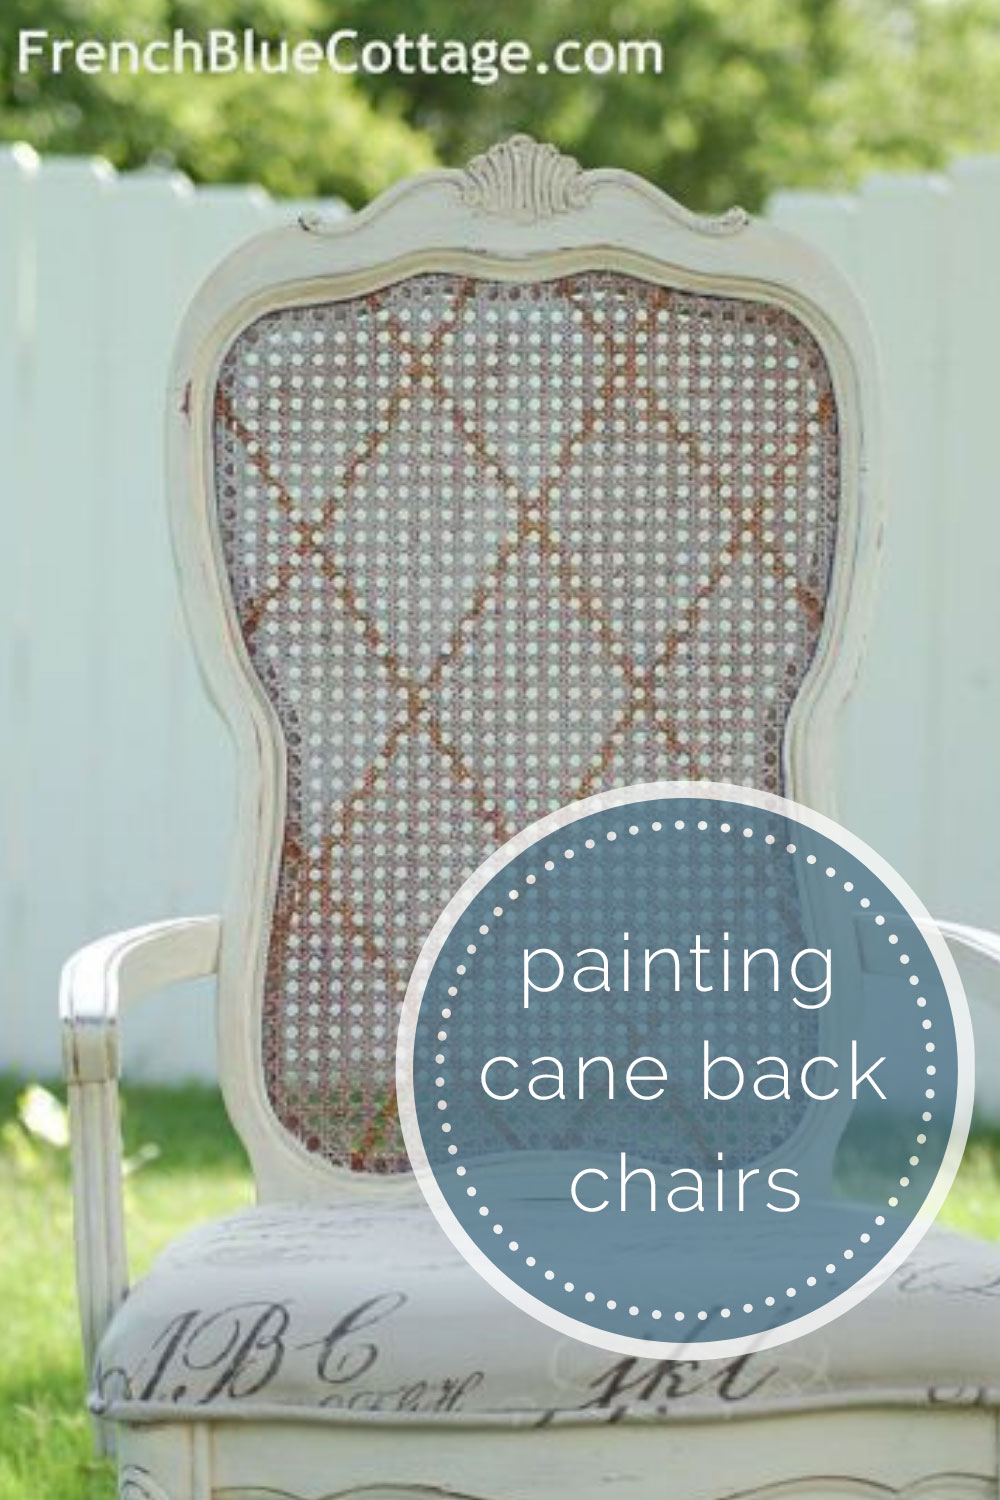 painted pattern on cane back chair